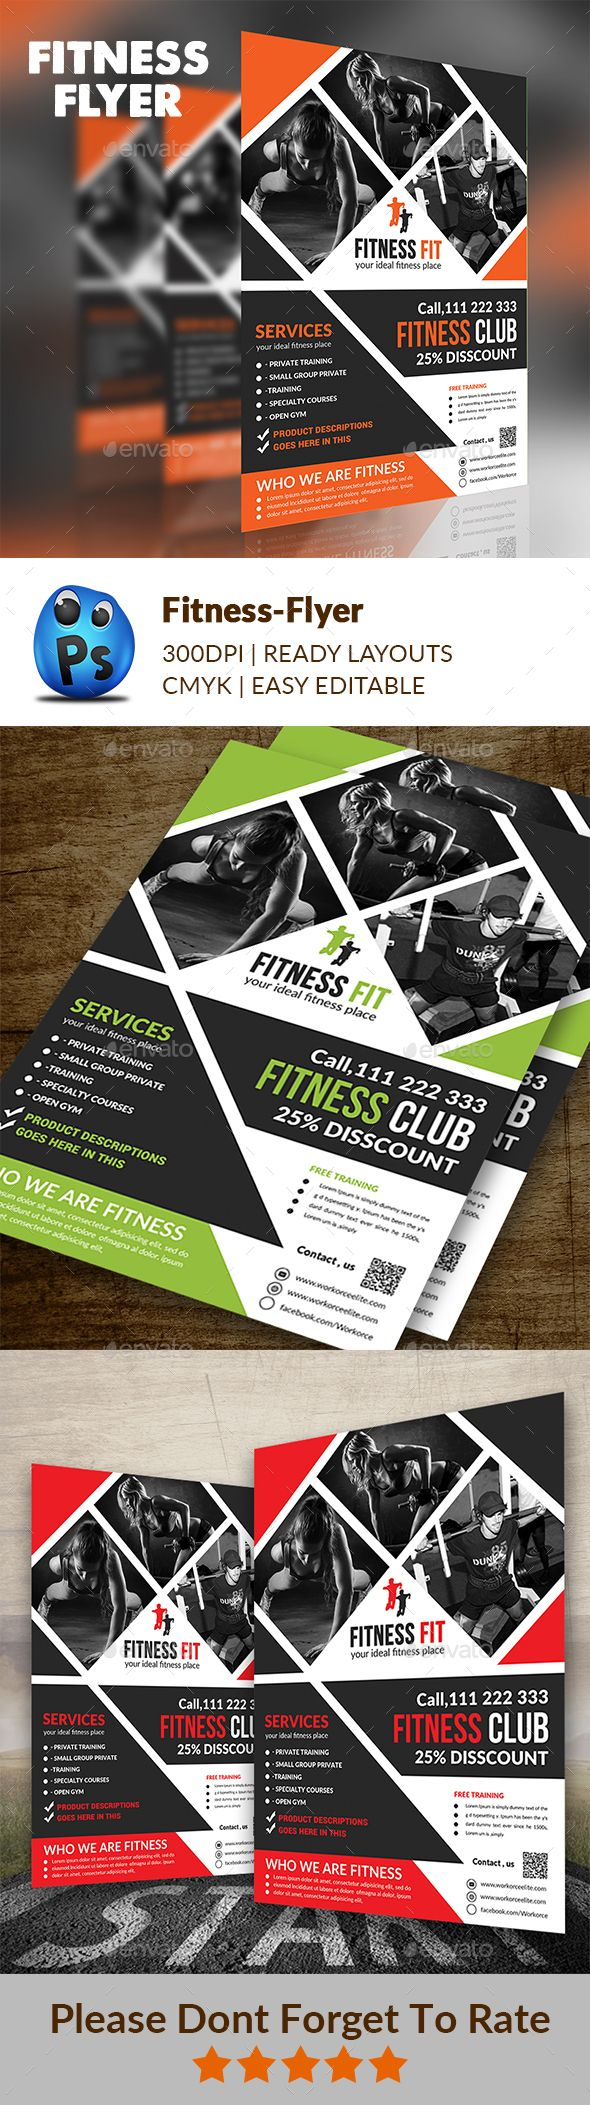 Fitness Flyer Design - Corporate Flyer Template PSD. Download here…